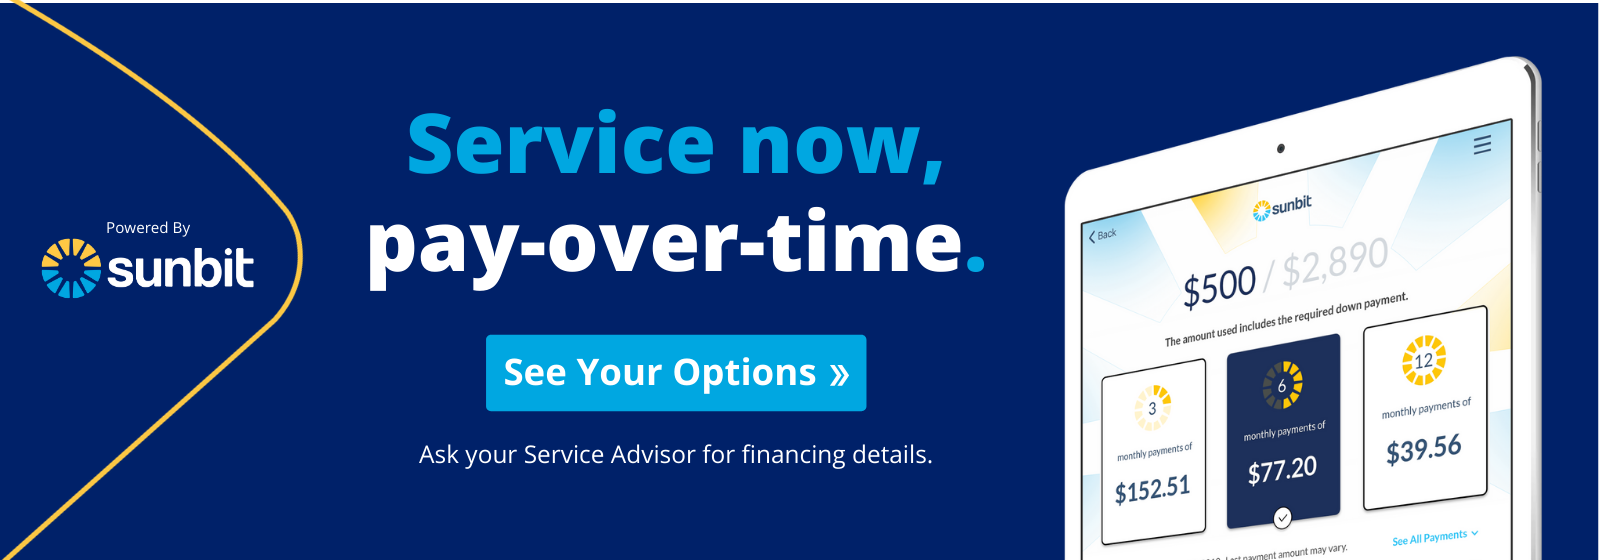 Service Now. Pay Over Time.